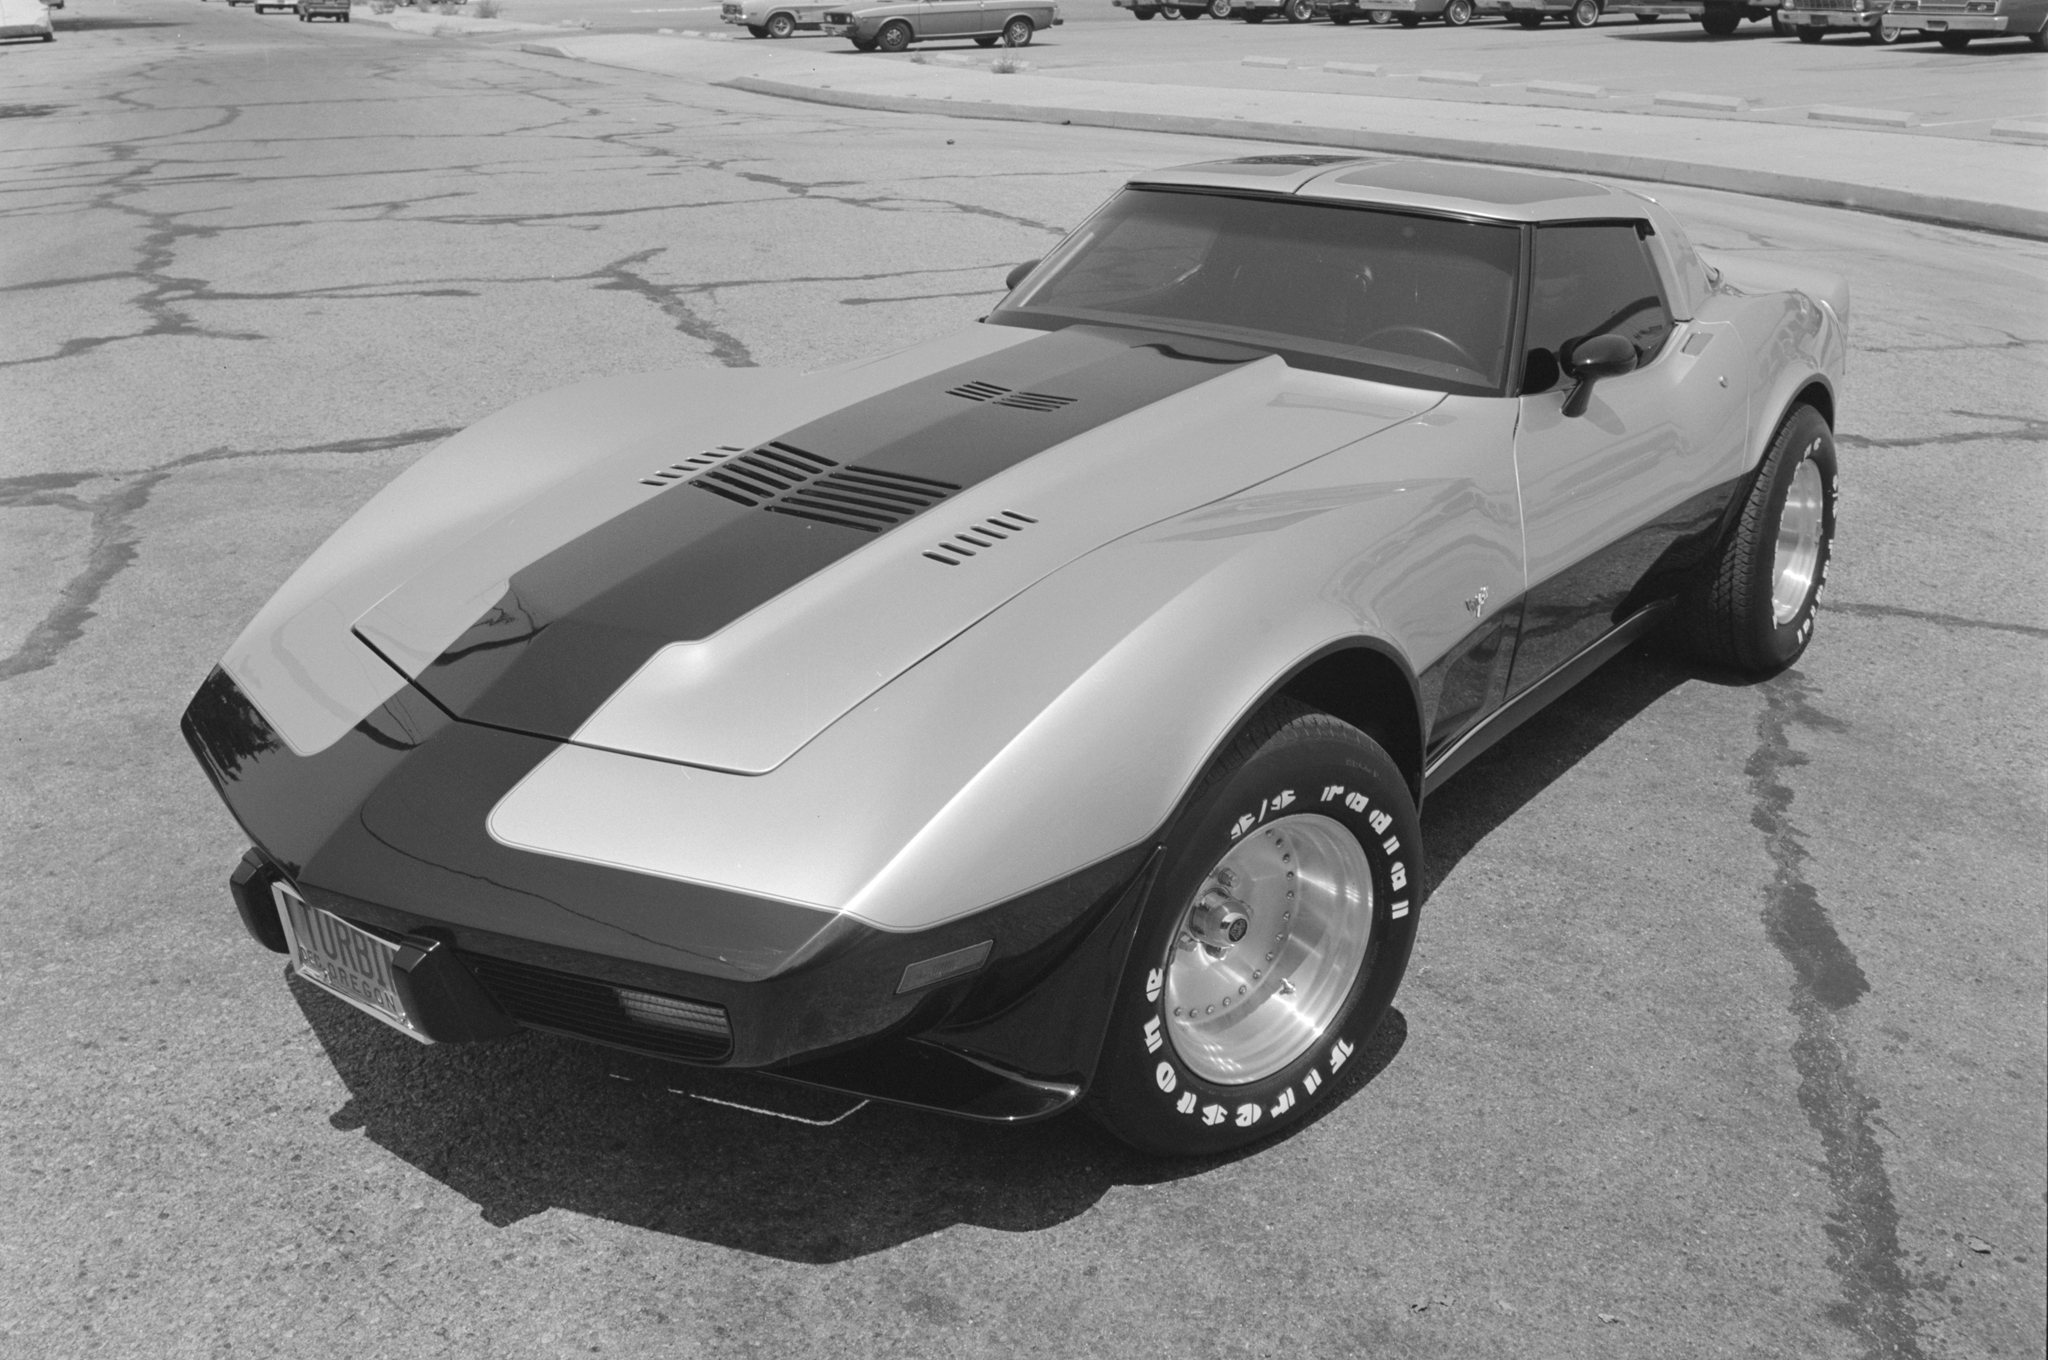 1978-Chevrolet-Corvette-Turbine-by-Vince-Granatelli-front-three-quarter